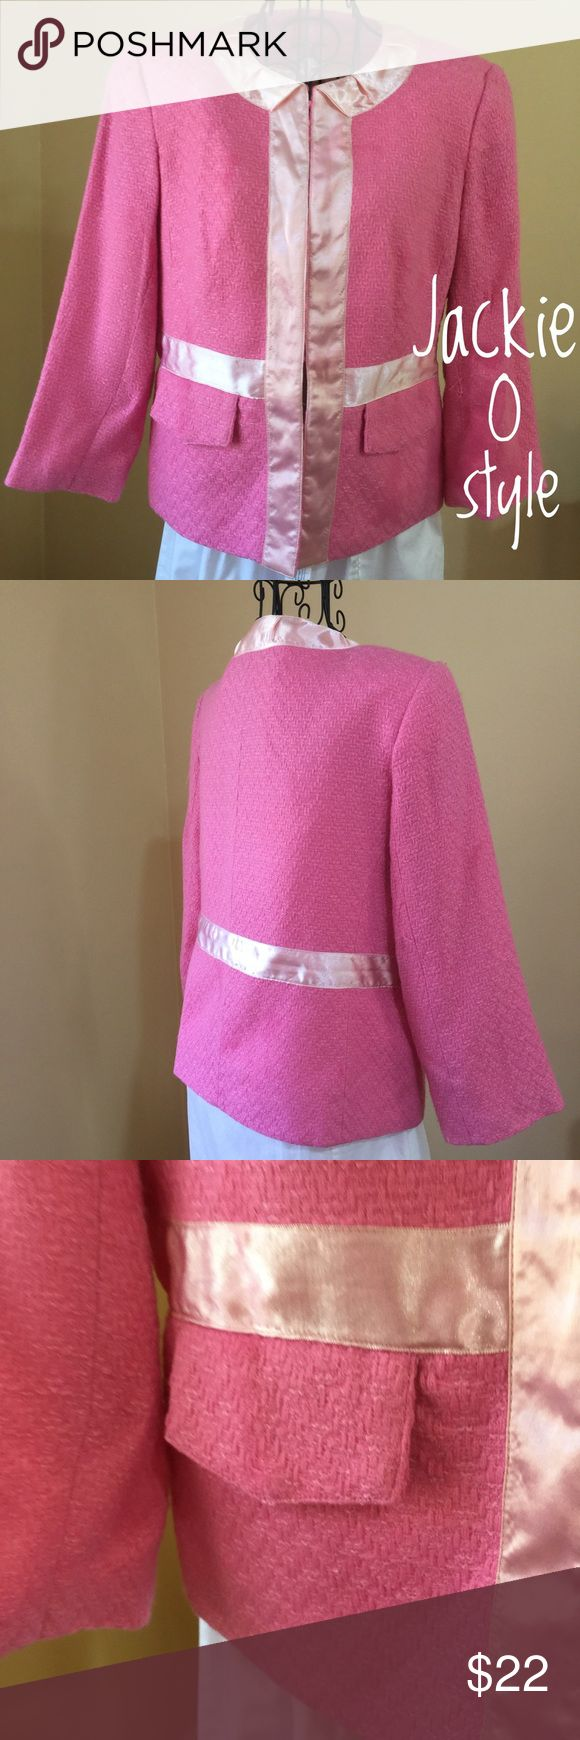 """Pink Herringbone Jacket A huge Nod to Jackie """"0"""", in this classic pink Herringbone Jacket. Silk lined, Satin ribbon detailing. Small snag left inner arm. Otherwise good condition. Truest color is the back shot. I welcome reasonable offers 💖💖💖 Walter Baker Jackets & Coats"""